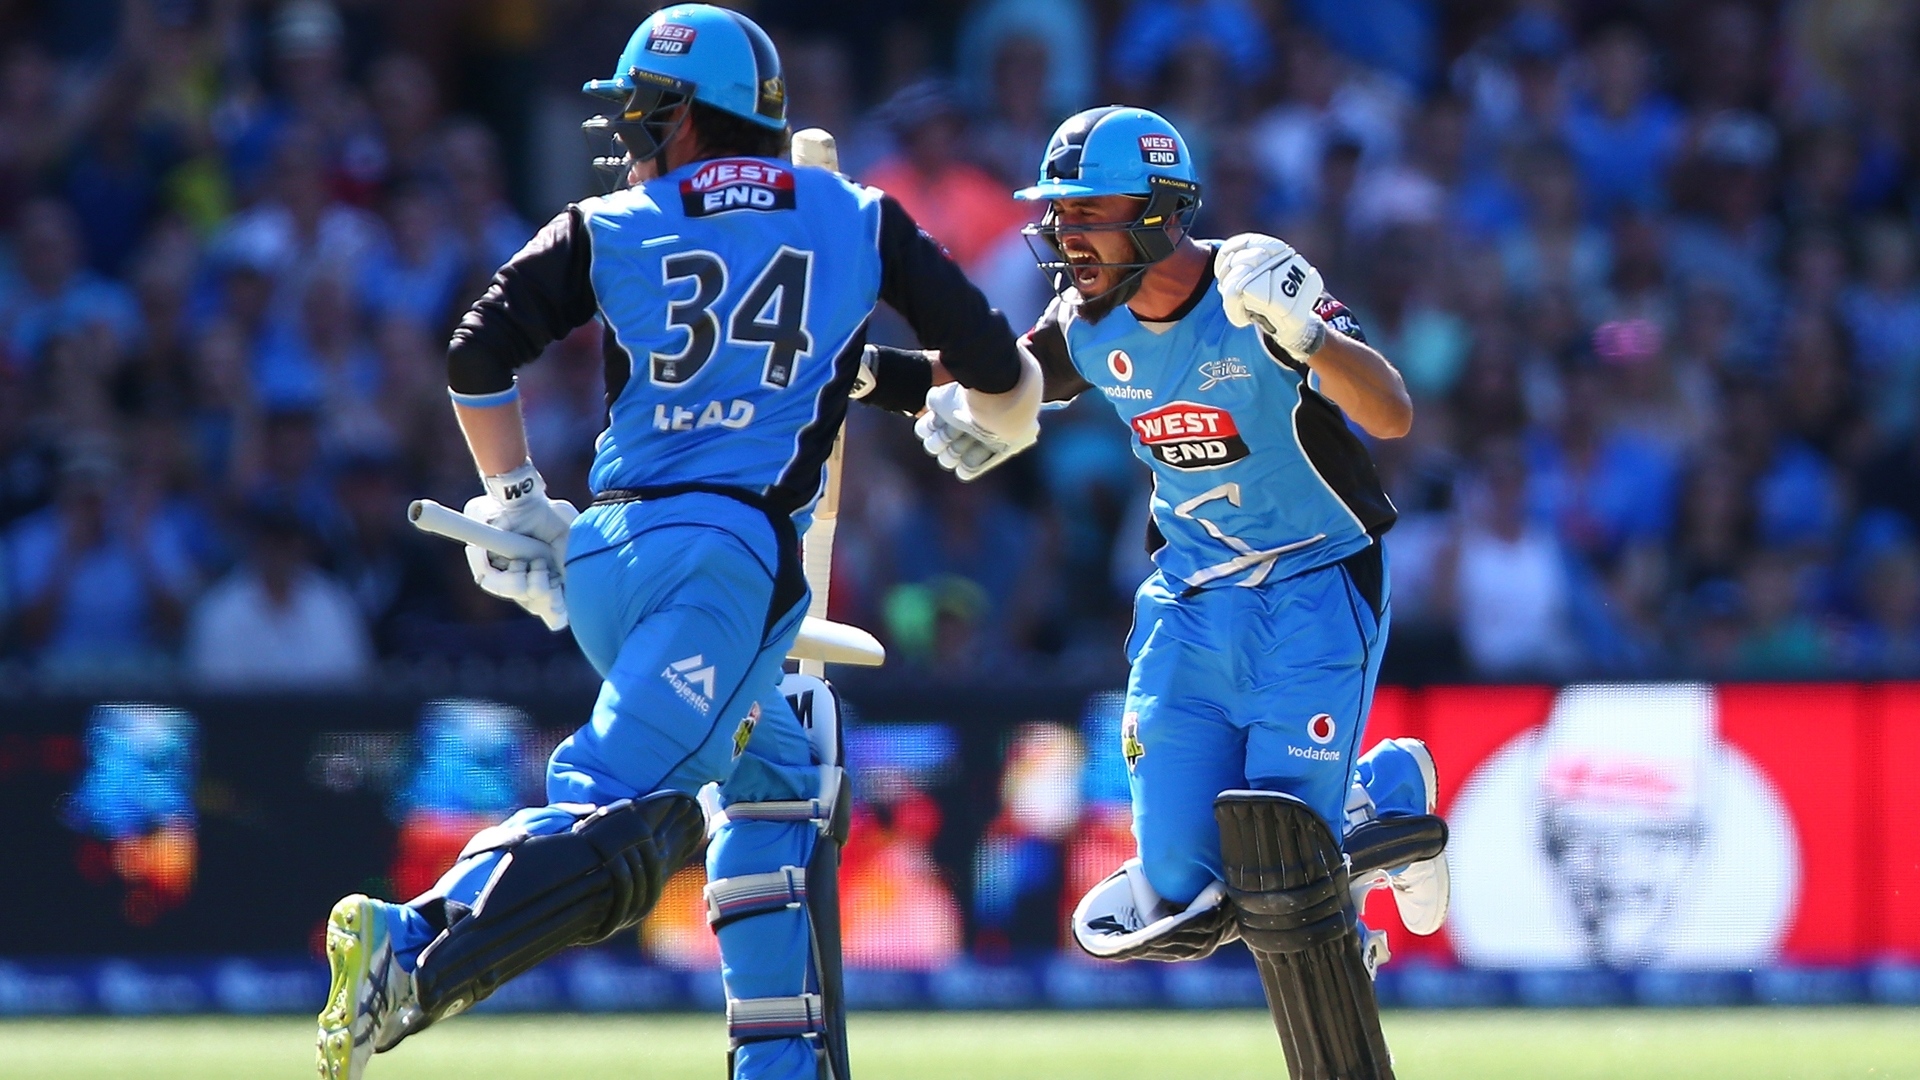 Weatherald century sees Strikers to first BBL title